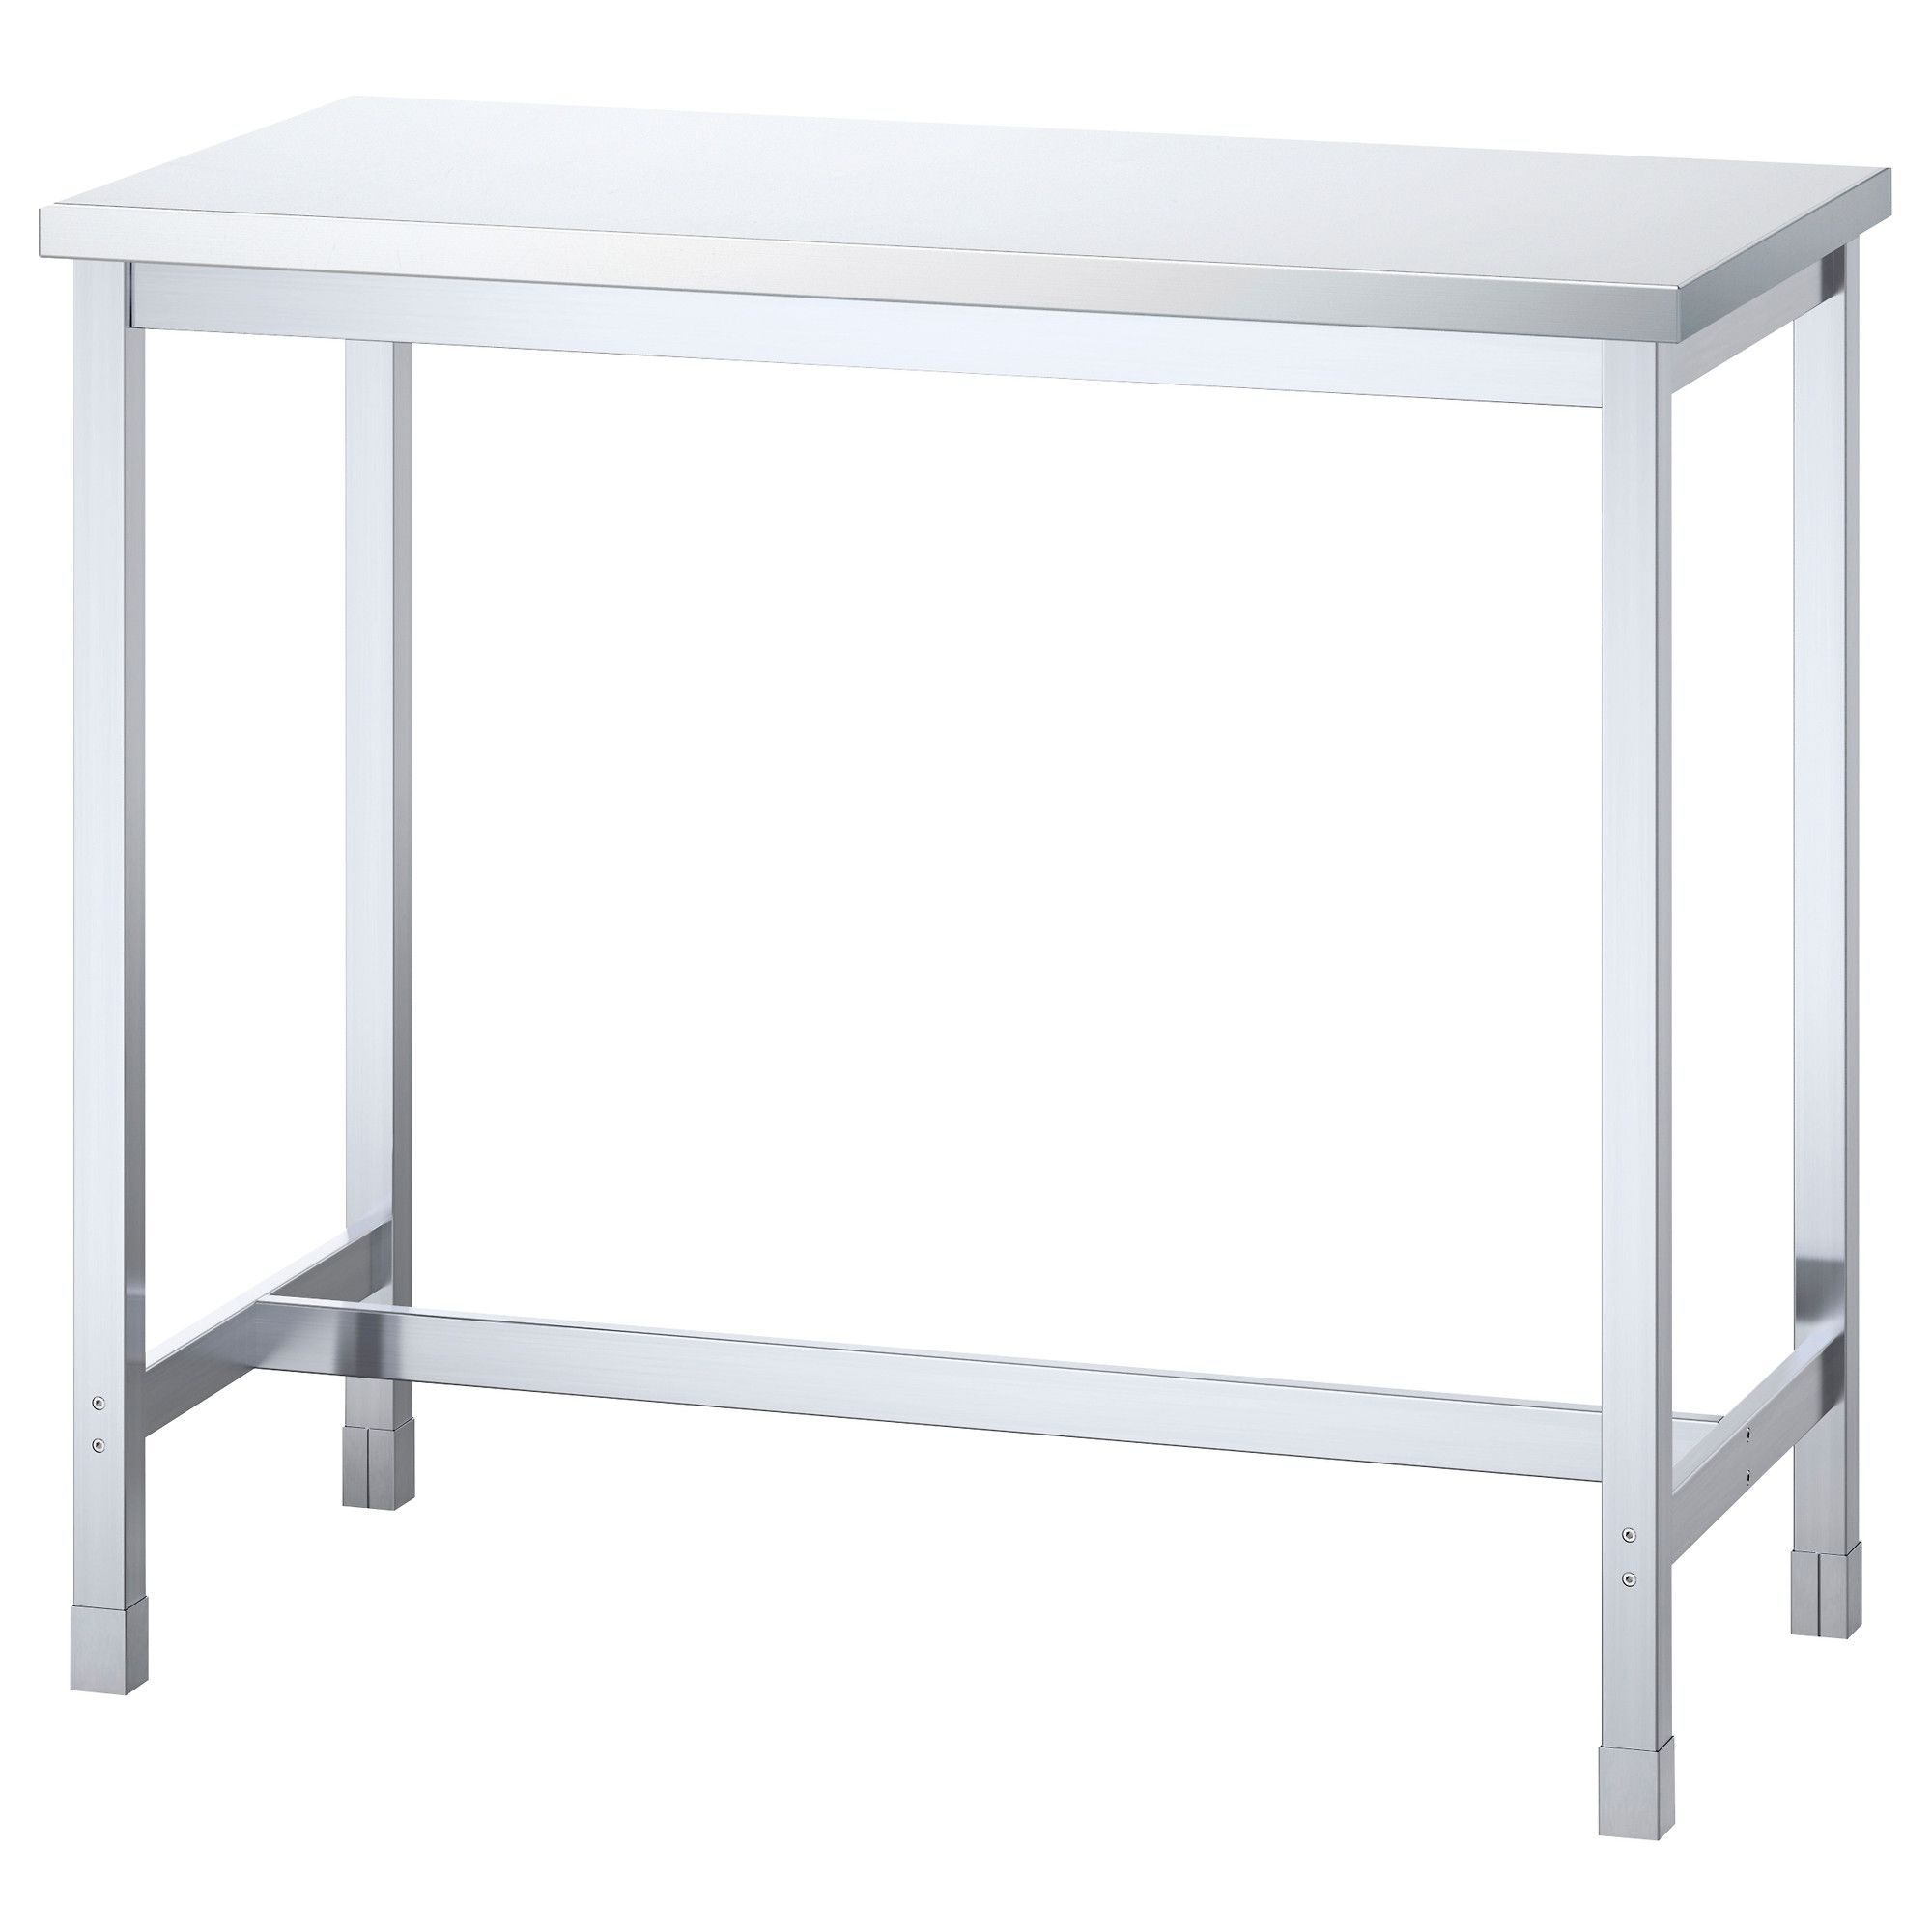 utby bar table stainless steel ikea for dan 39 s desk